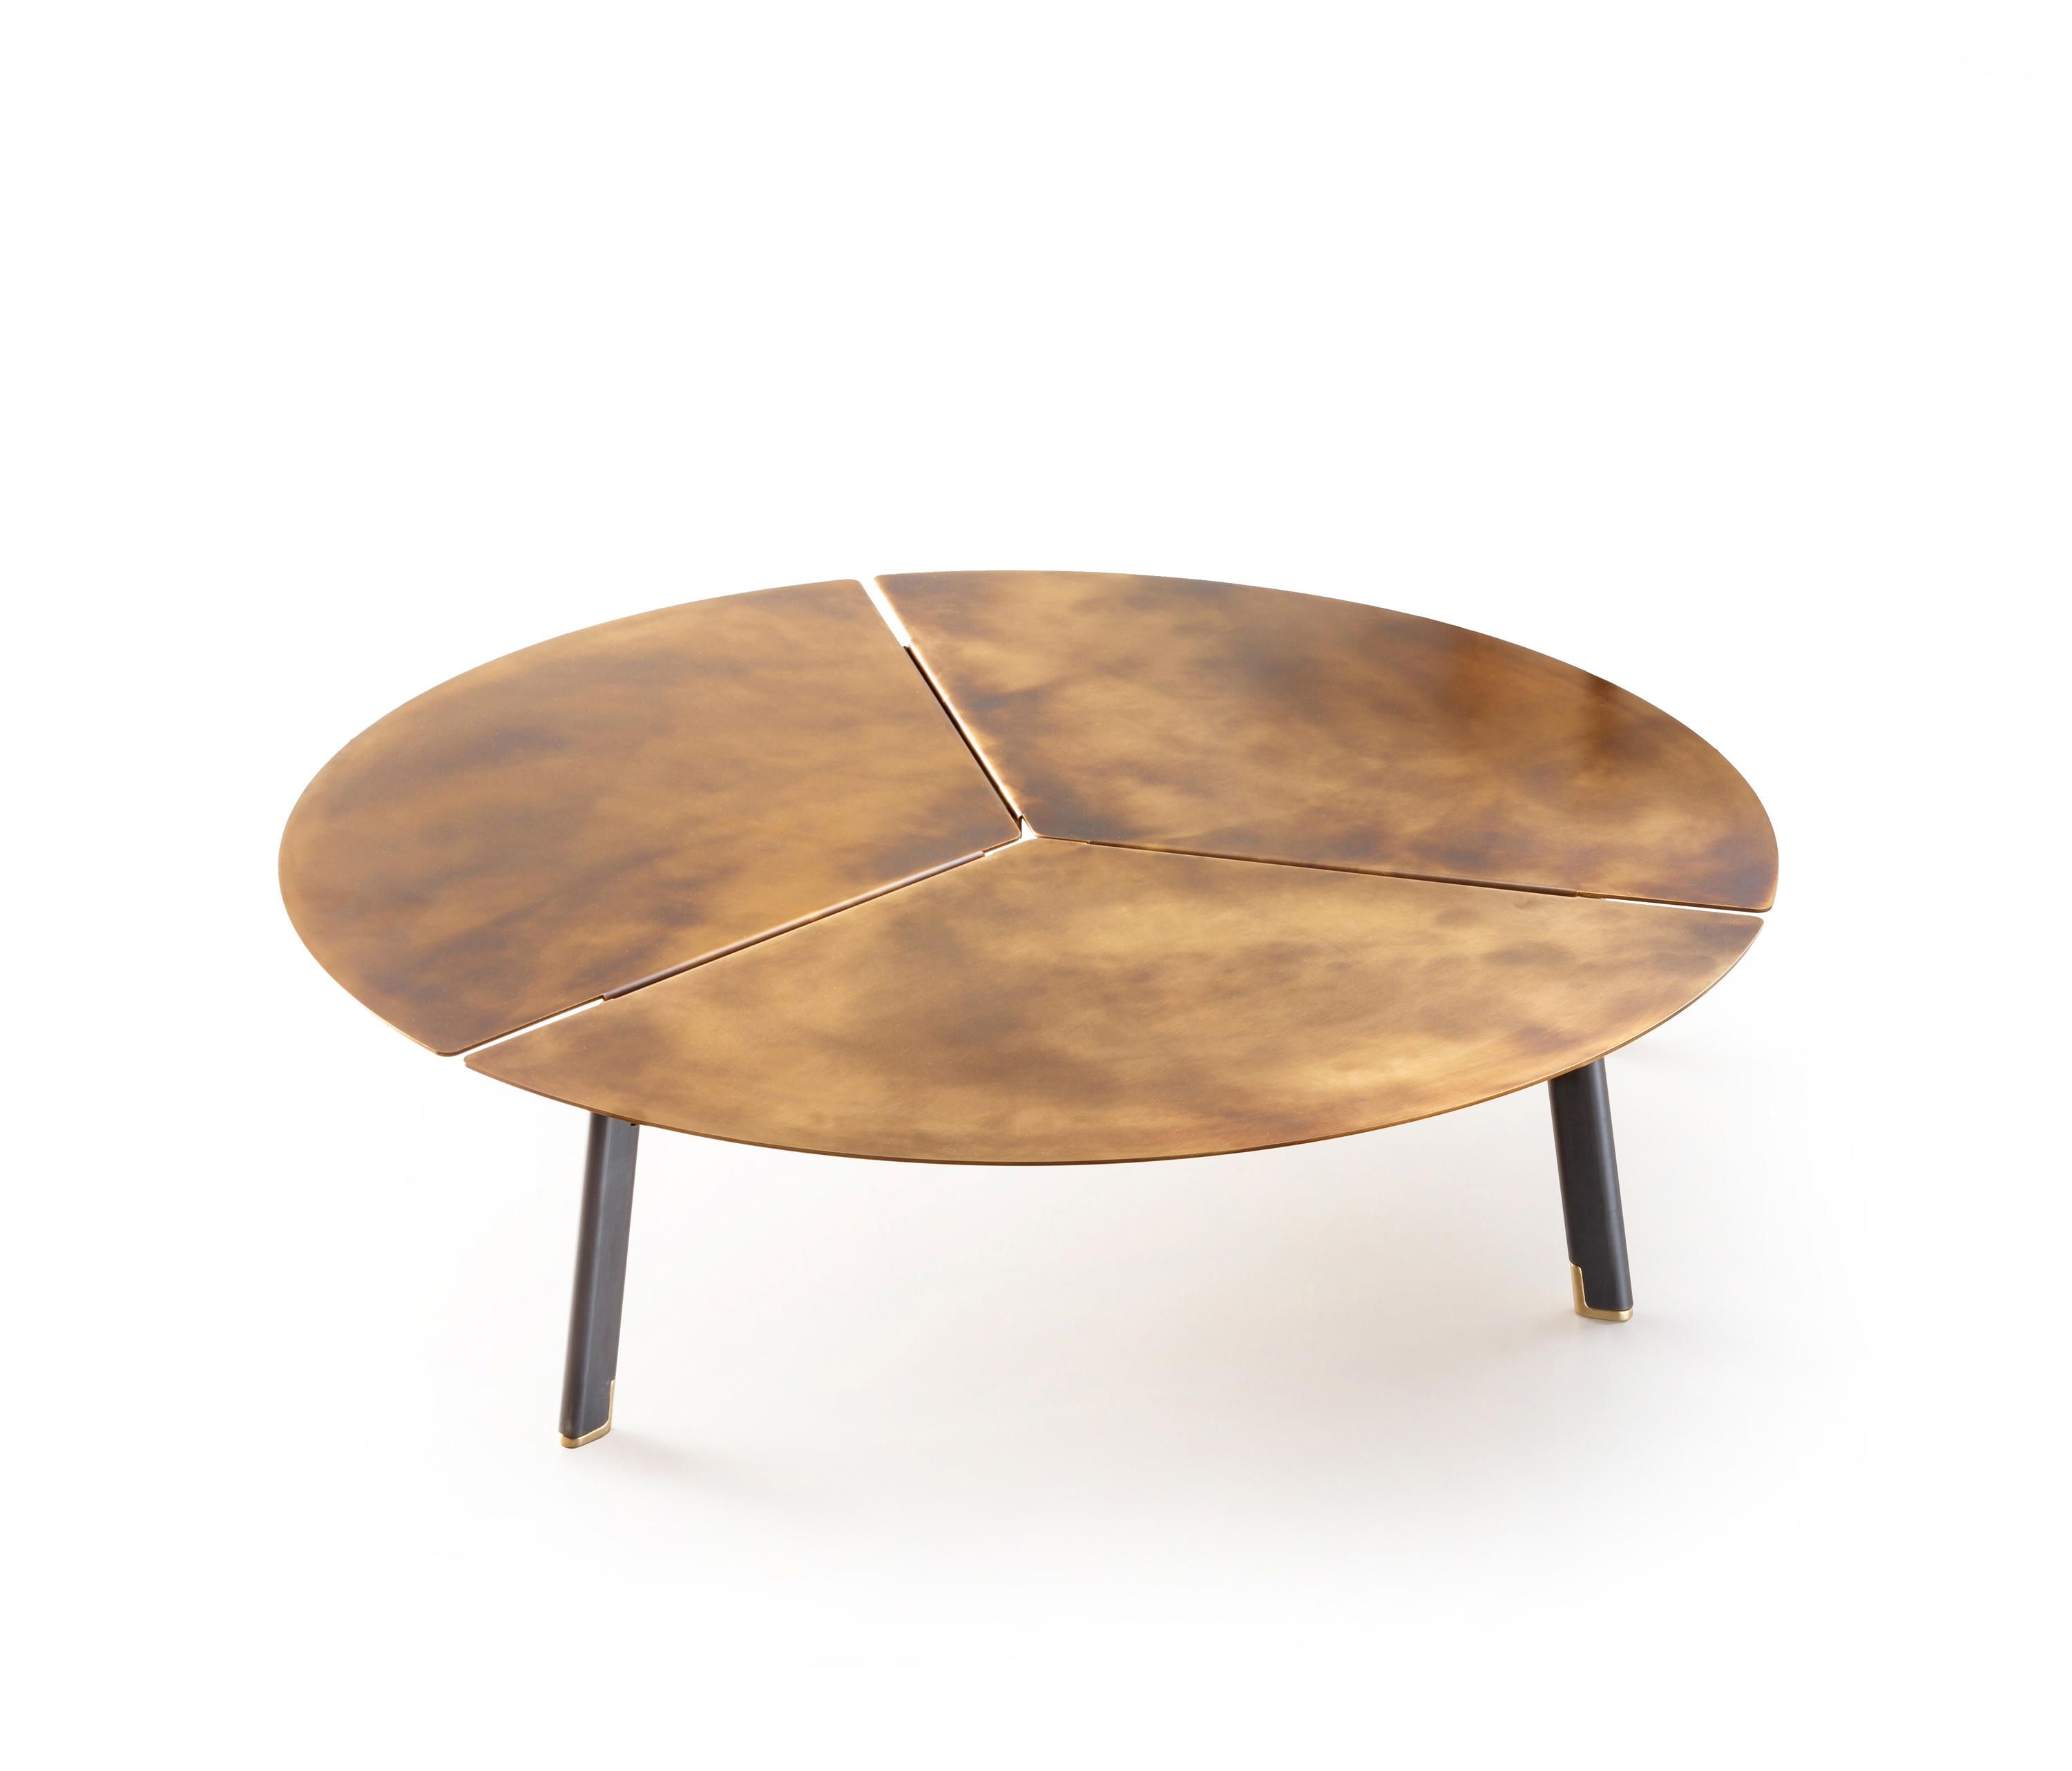 SIDE TABLES WITH TOP IN BRONZE - High quality designer SIDE TABLES ...